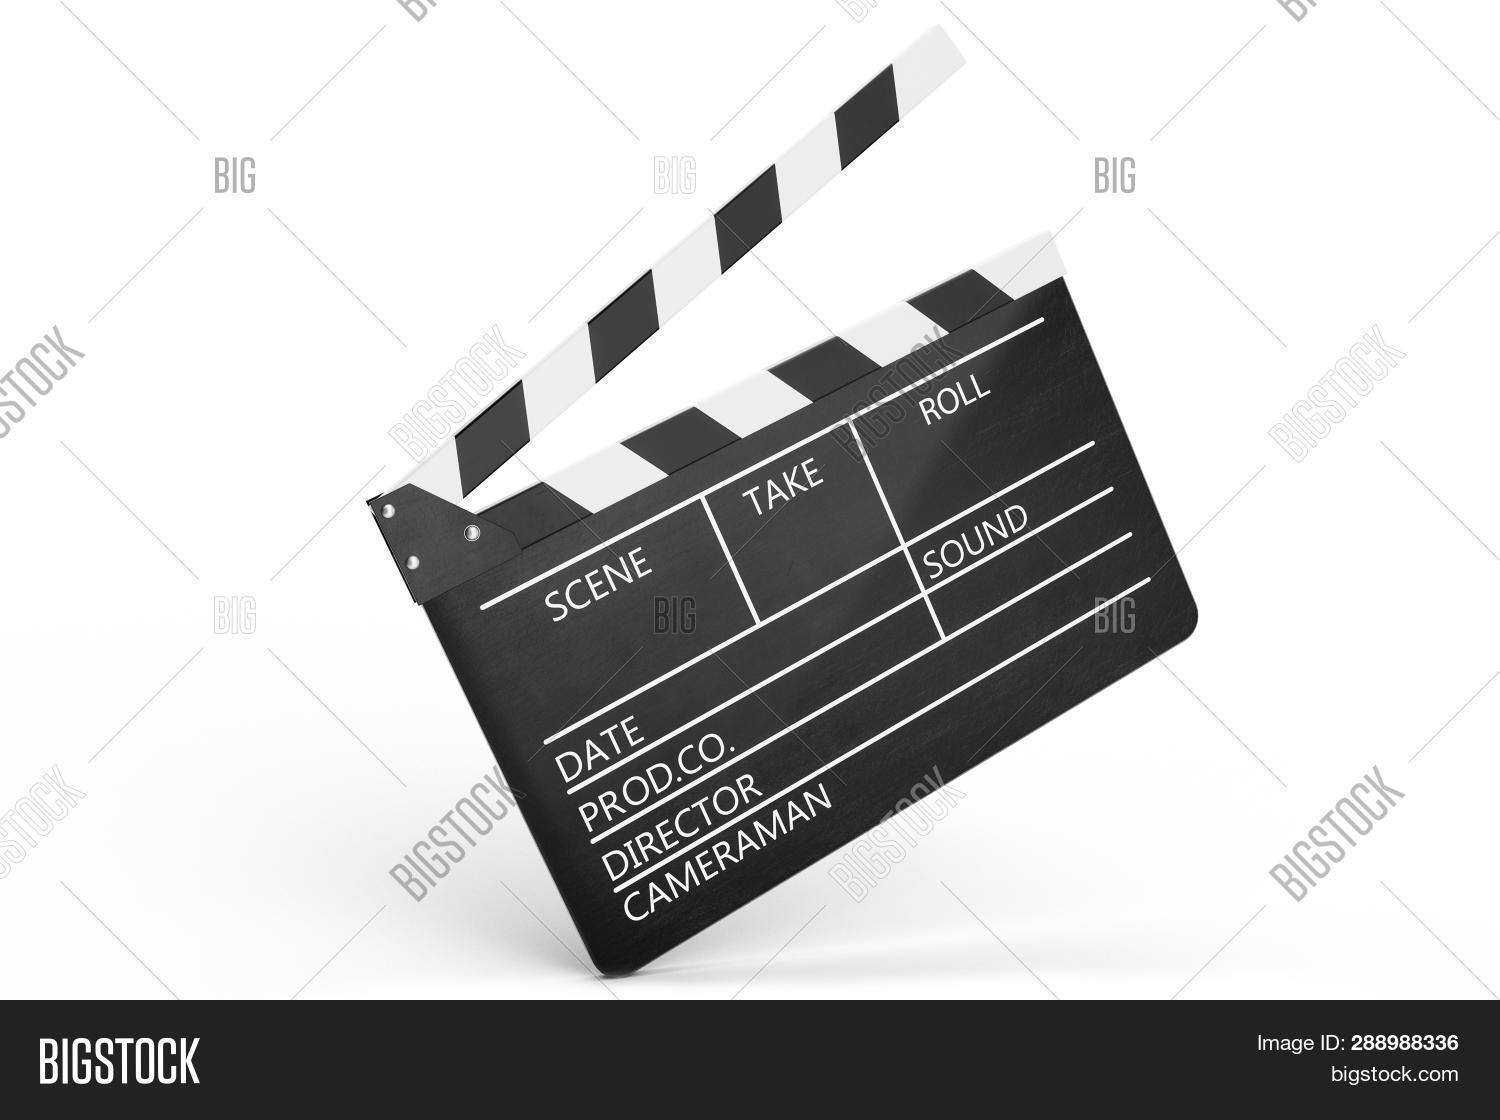 3d,action,art,background,black,blackboard,blank,board,camera,cameraman,chalkboard,cinema,cinematography,clap,clapboard,clapper,clapper-board,clapperboard,clip,cut,director,empty,entertainment,equipment,film,frame,hollywood,icon,illustration,industry,isolated,media,motion,movie,object,picture,producer,production,render,scene,shot,slate,studio,symbol,take,video,view,white,wooden